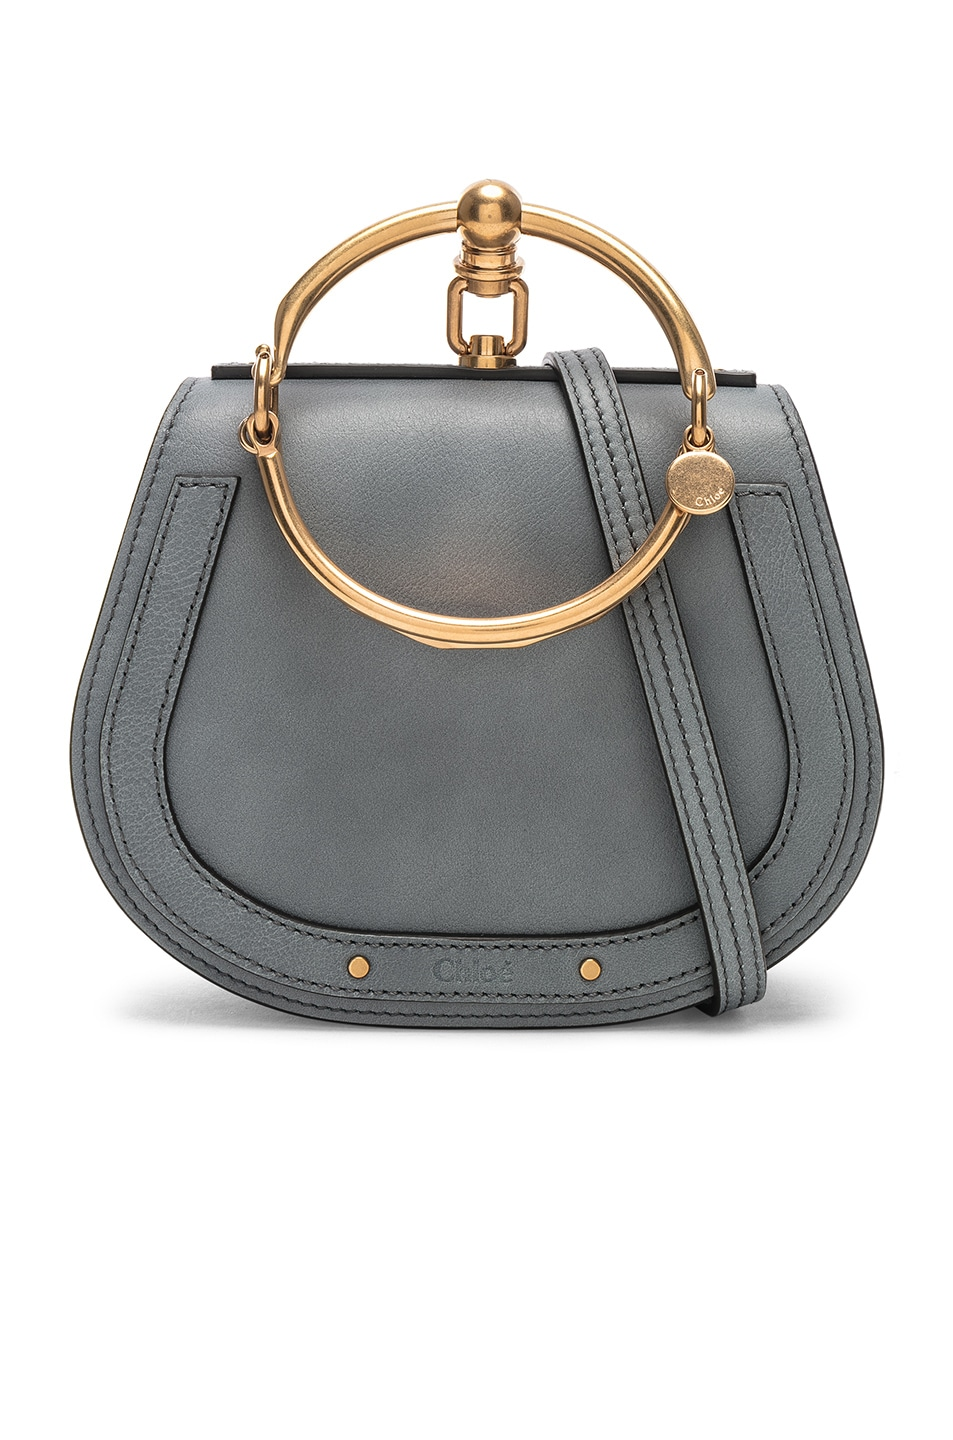 Image 1 of Chloe Small Nile Bracelet Bag Calfskin & Suede in Cloudy Blue